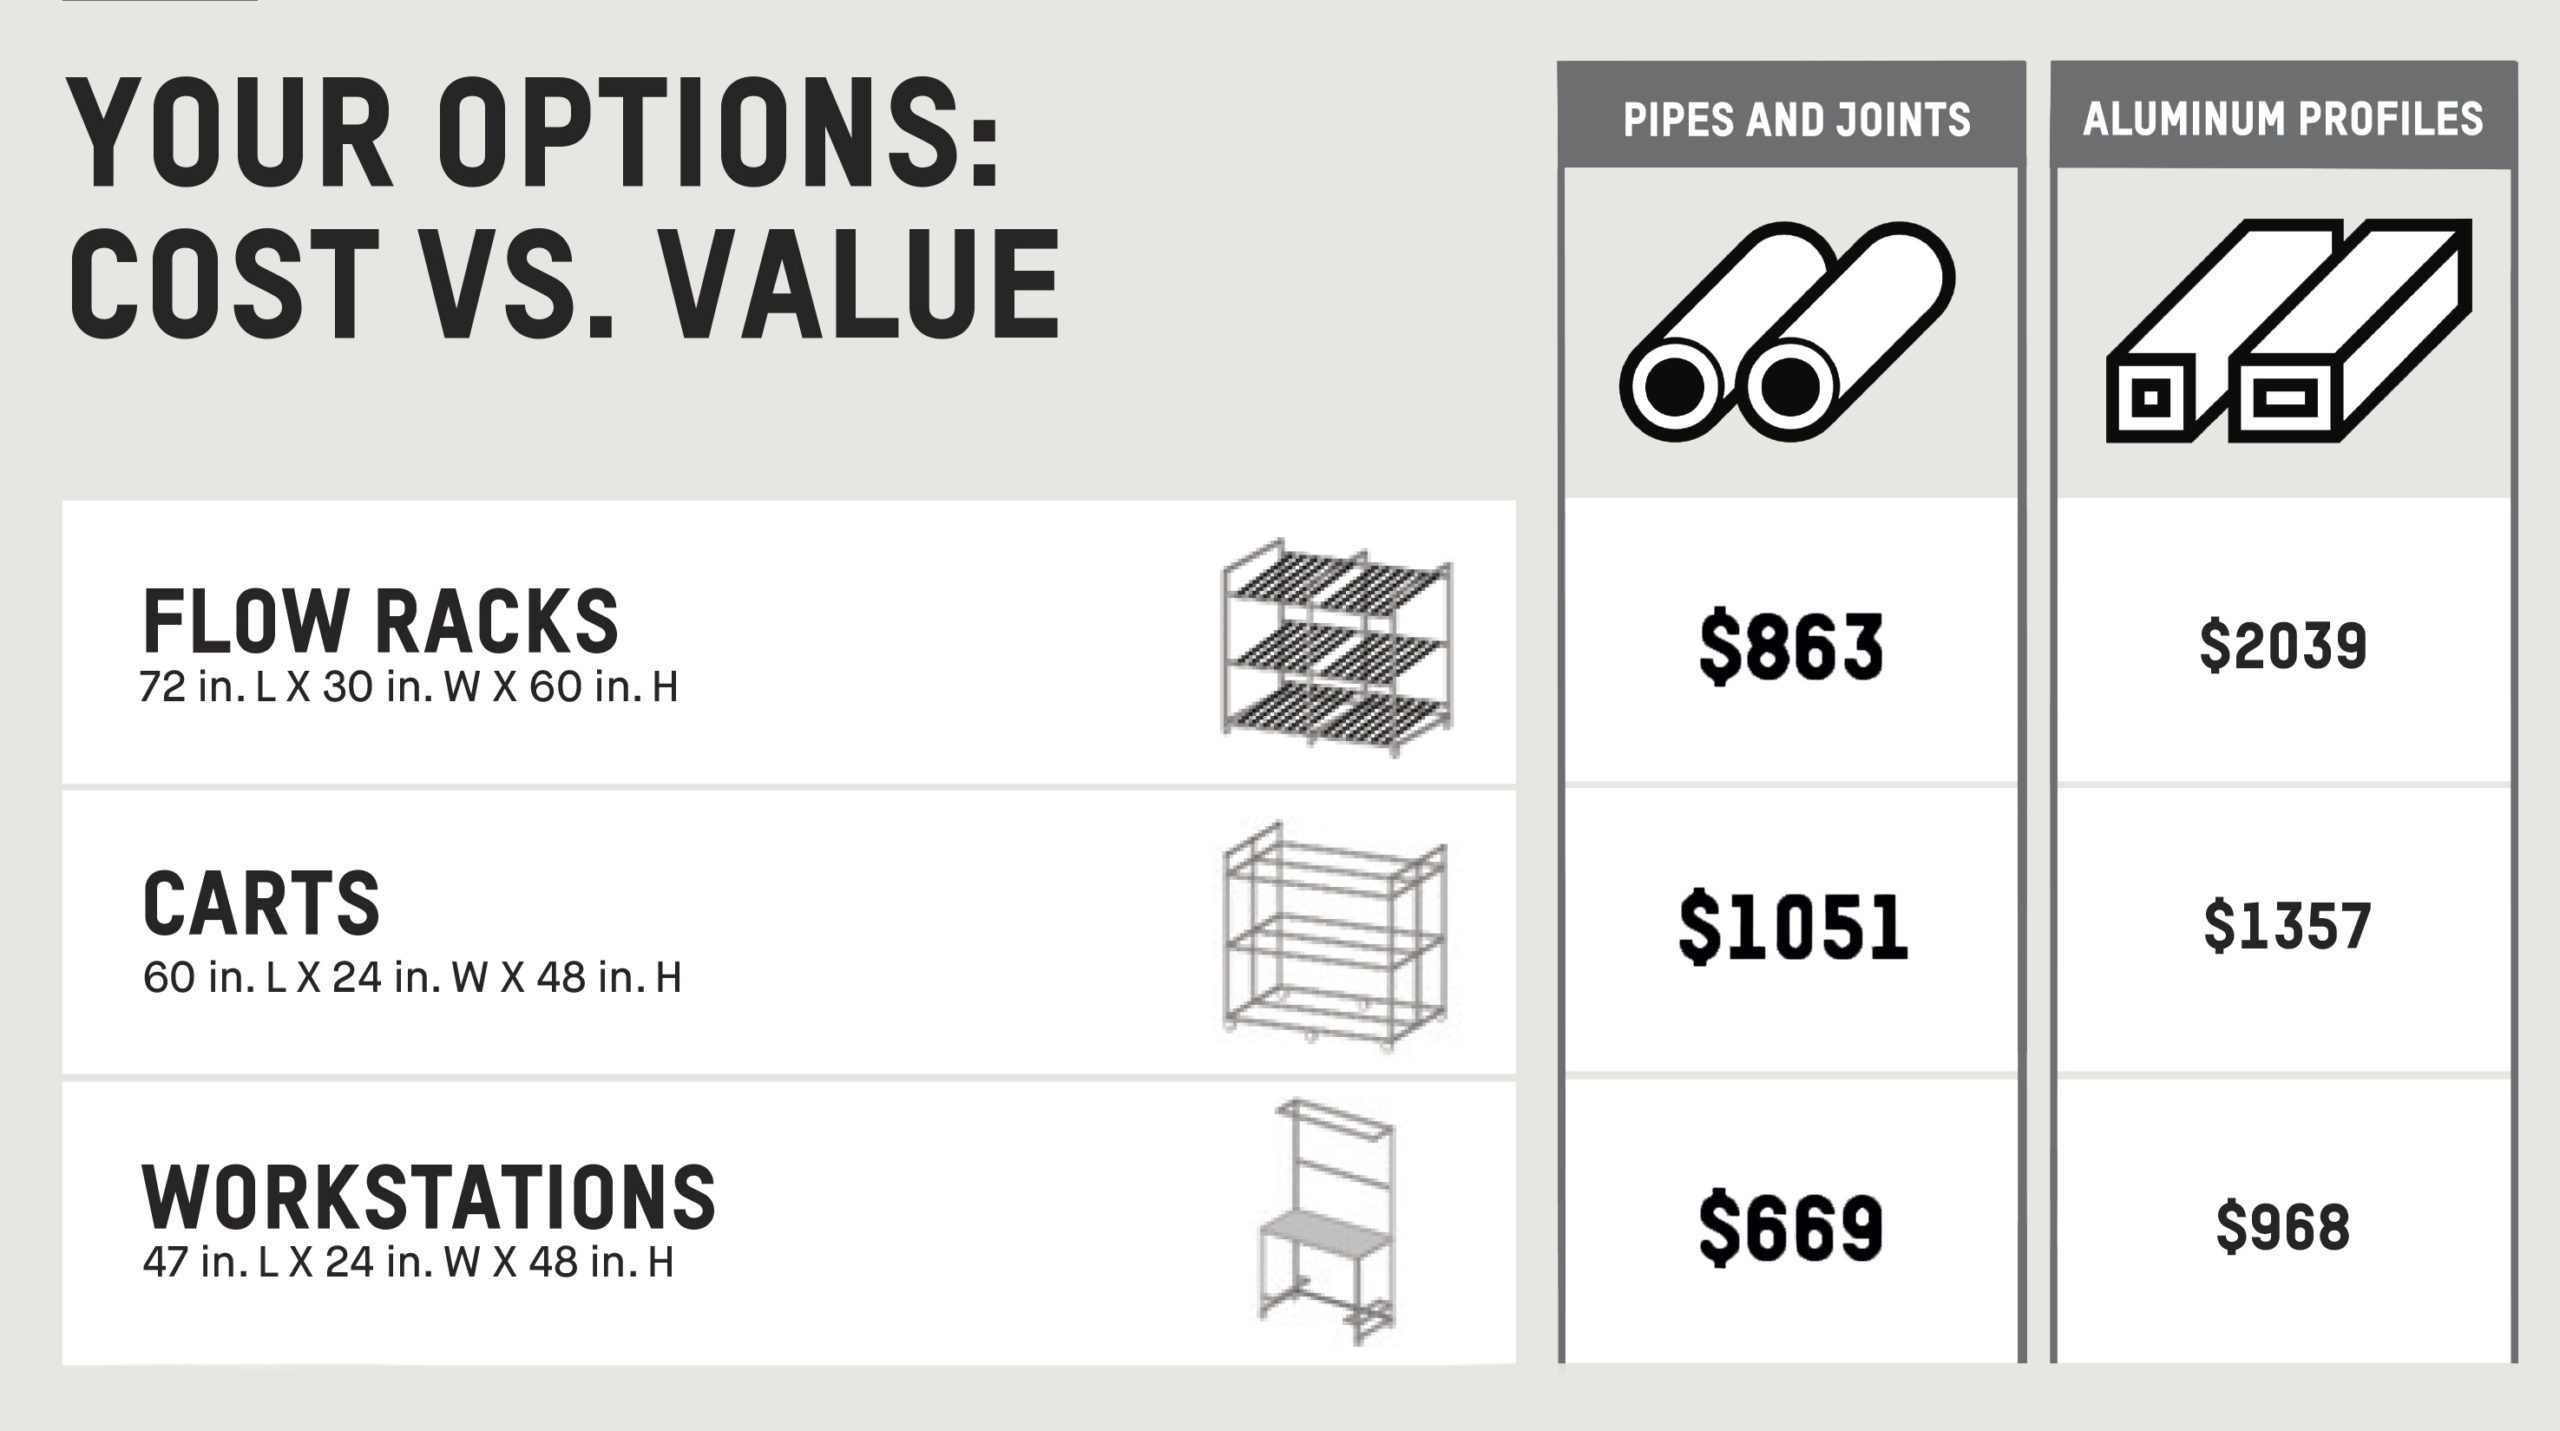 Chart showing the different prices for the same structures, in aluminum or pipes